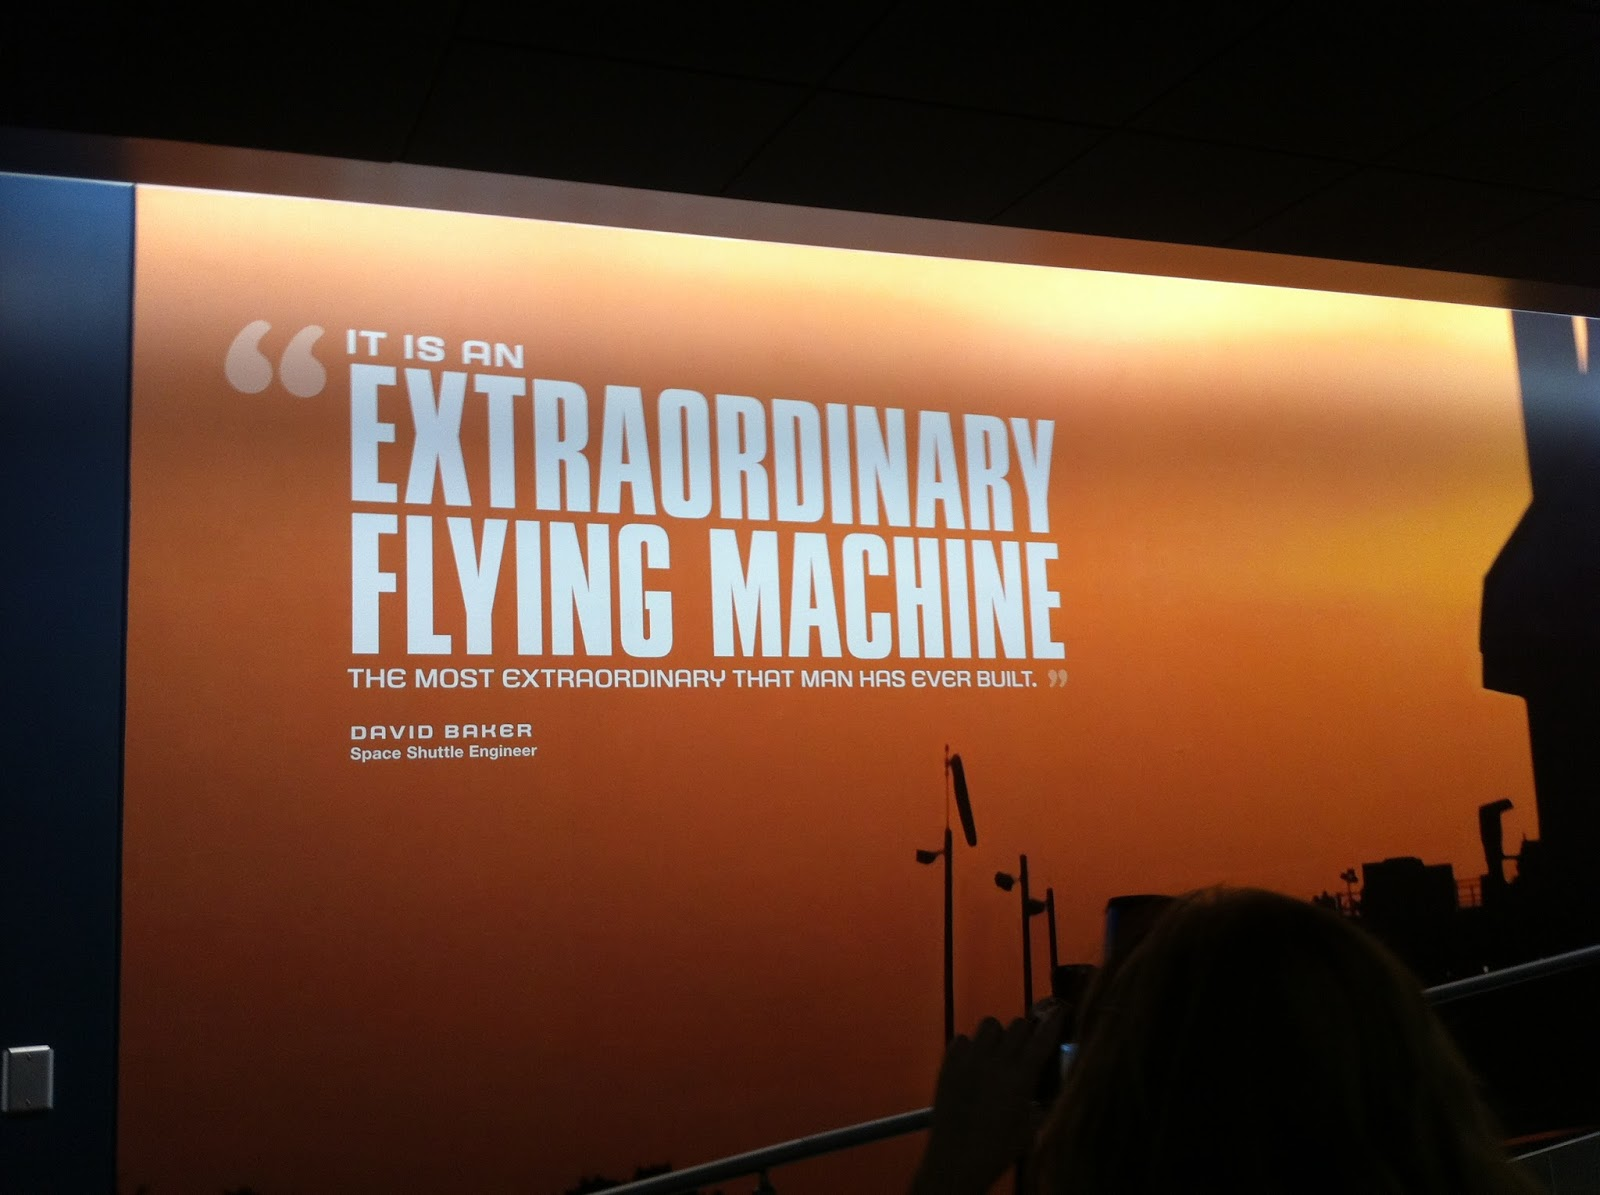 space shuttle quotes - photo #12